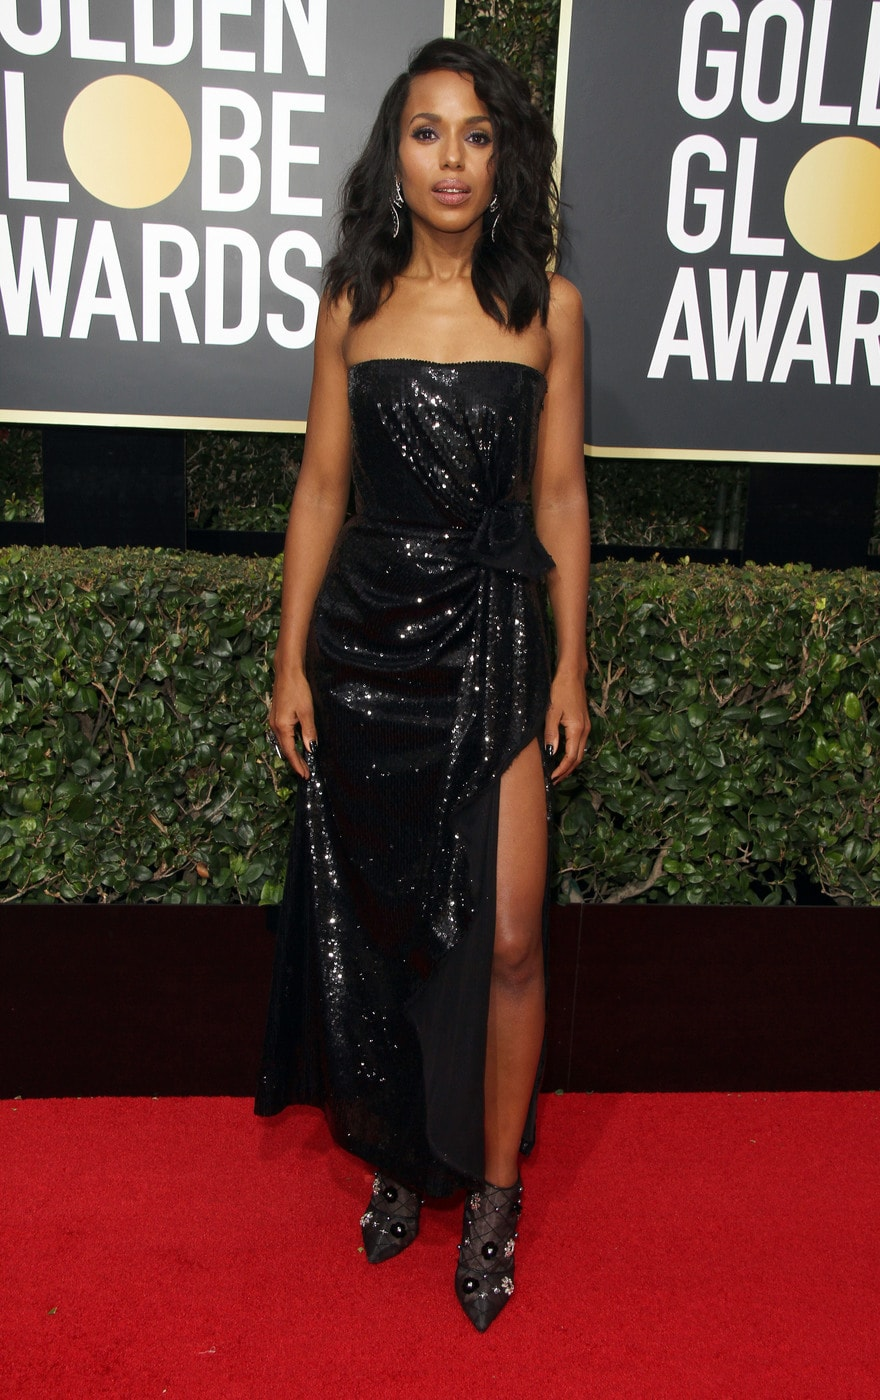 Kerry Washington in a black strapless Prabal Gurung gown at the 2018 Golden Globe Awards red carpet